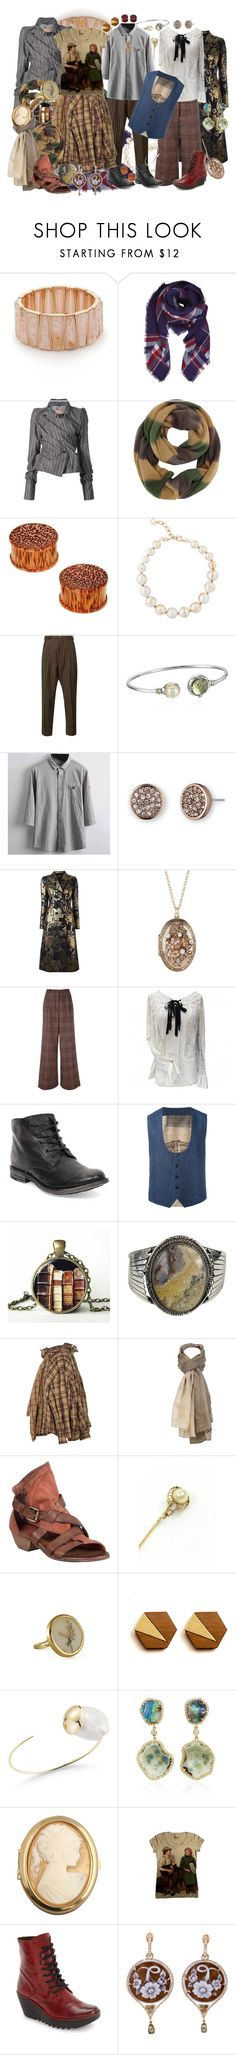 """""""Boy and Girl"""" by amanda-anda-panda ❤ liked on Polyvore featuring New Directions, Humble Chic, Vivienne Westwood Gold Label, NOVICA, DIANA BROUSSARD, Vivienne Westwood Man, Judith Ripka, Anne Klein, Dolce&Gabbana and Spring Street"""